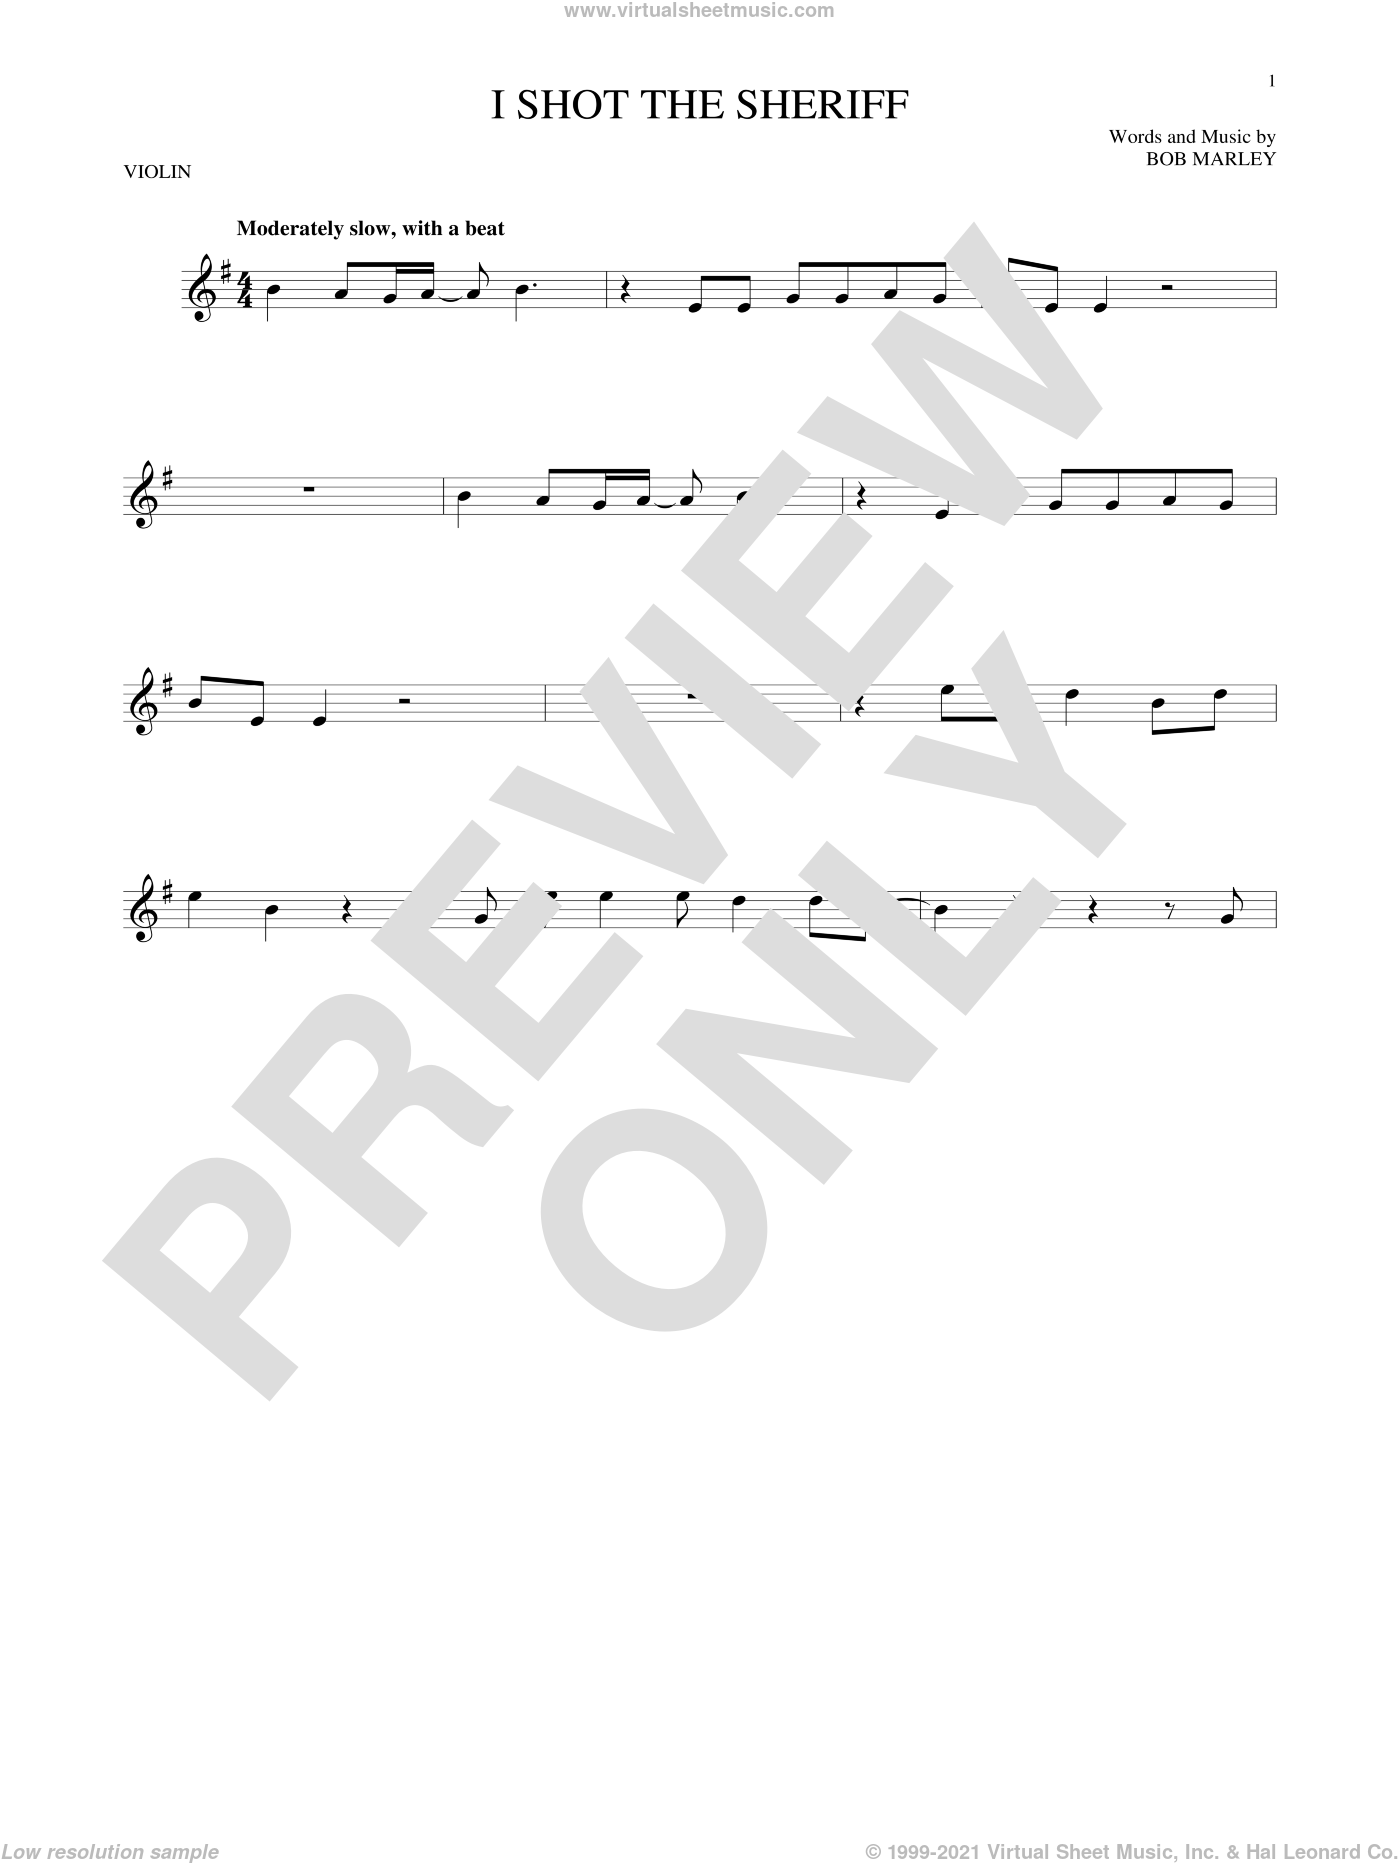 I Shot The Sheriff sheet music for violin solo by Bob Marley, Eric Clapton and Warren G, intermediate skill level